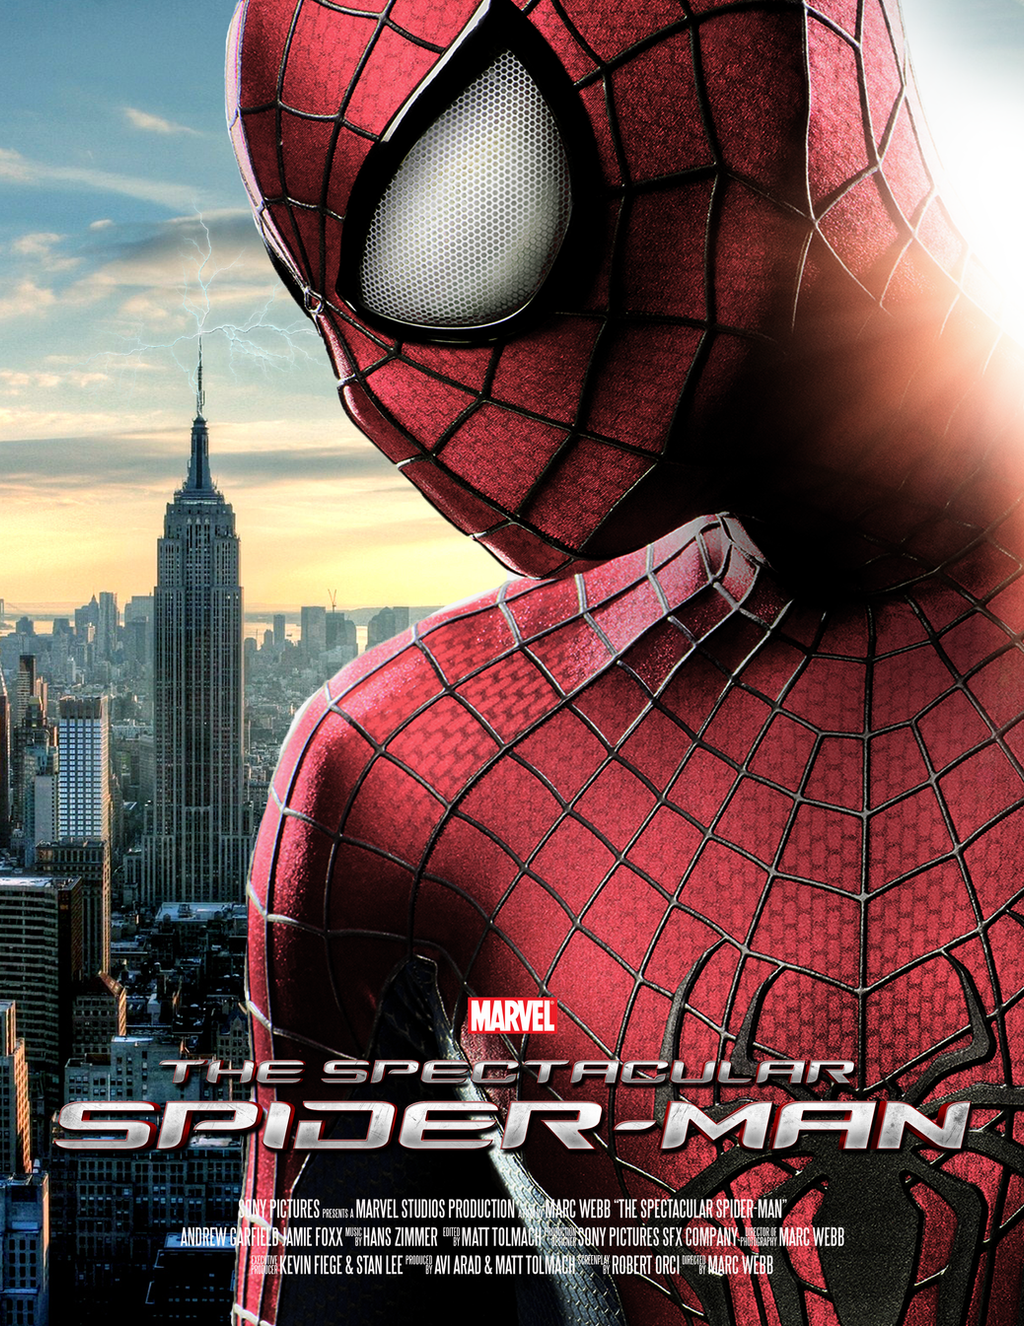 THE SPECTACULAR SPIDER-MAN - POSTER I: SPIDER-MAN by ...